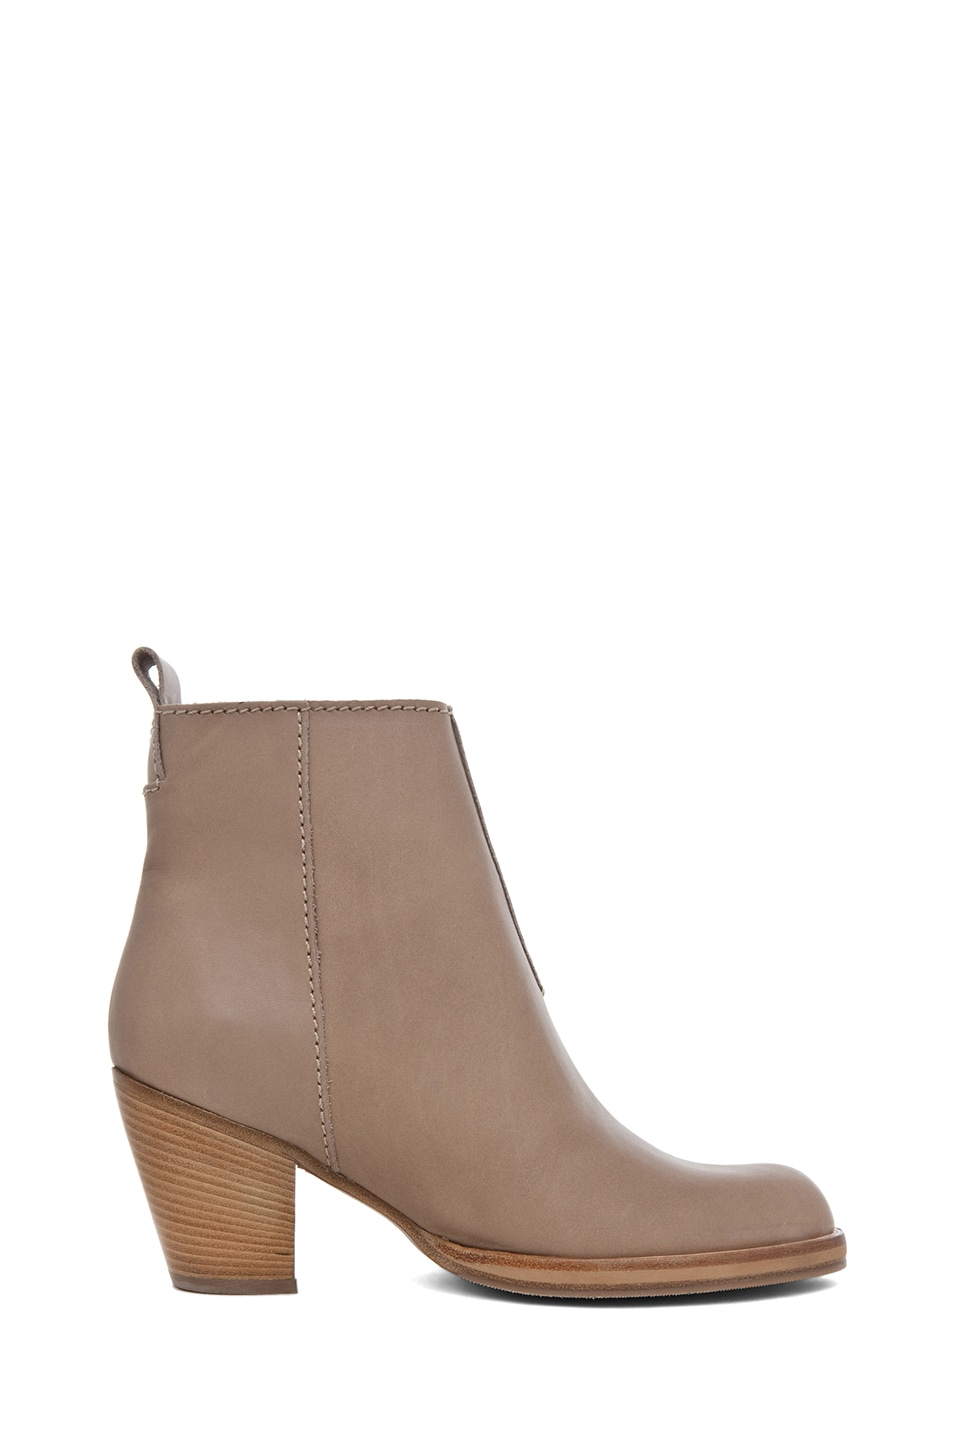 Image 5 of Acne Studios Pistol Leather Bootie in Coffee